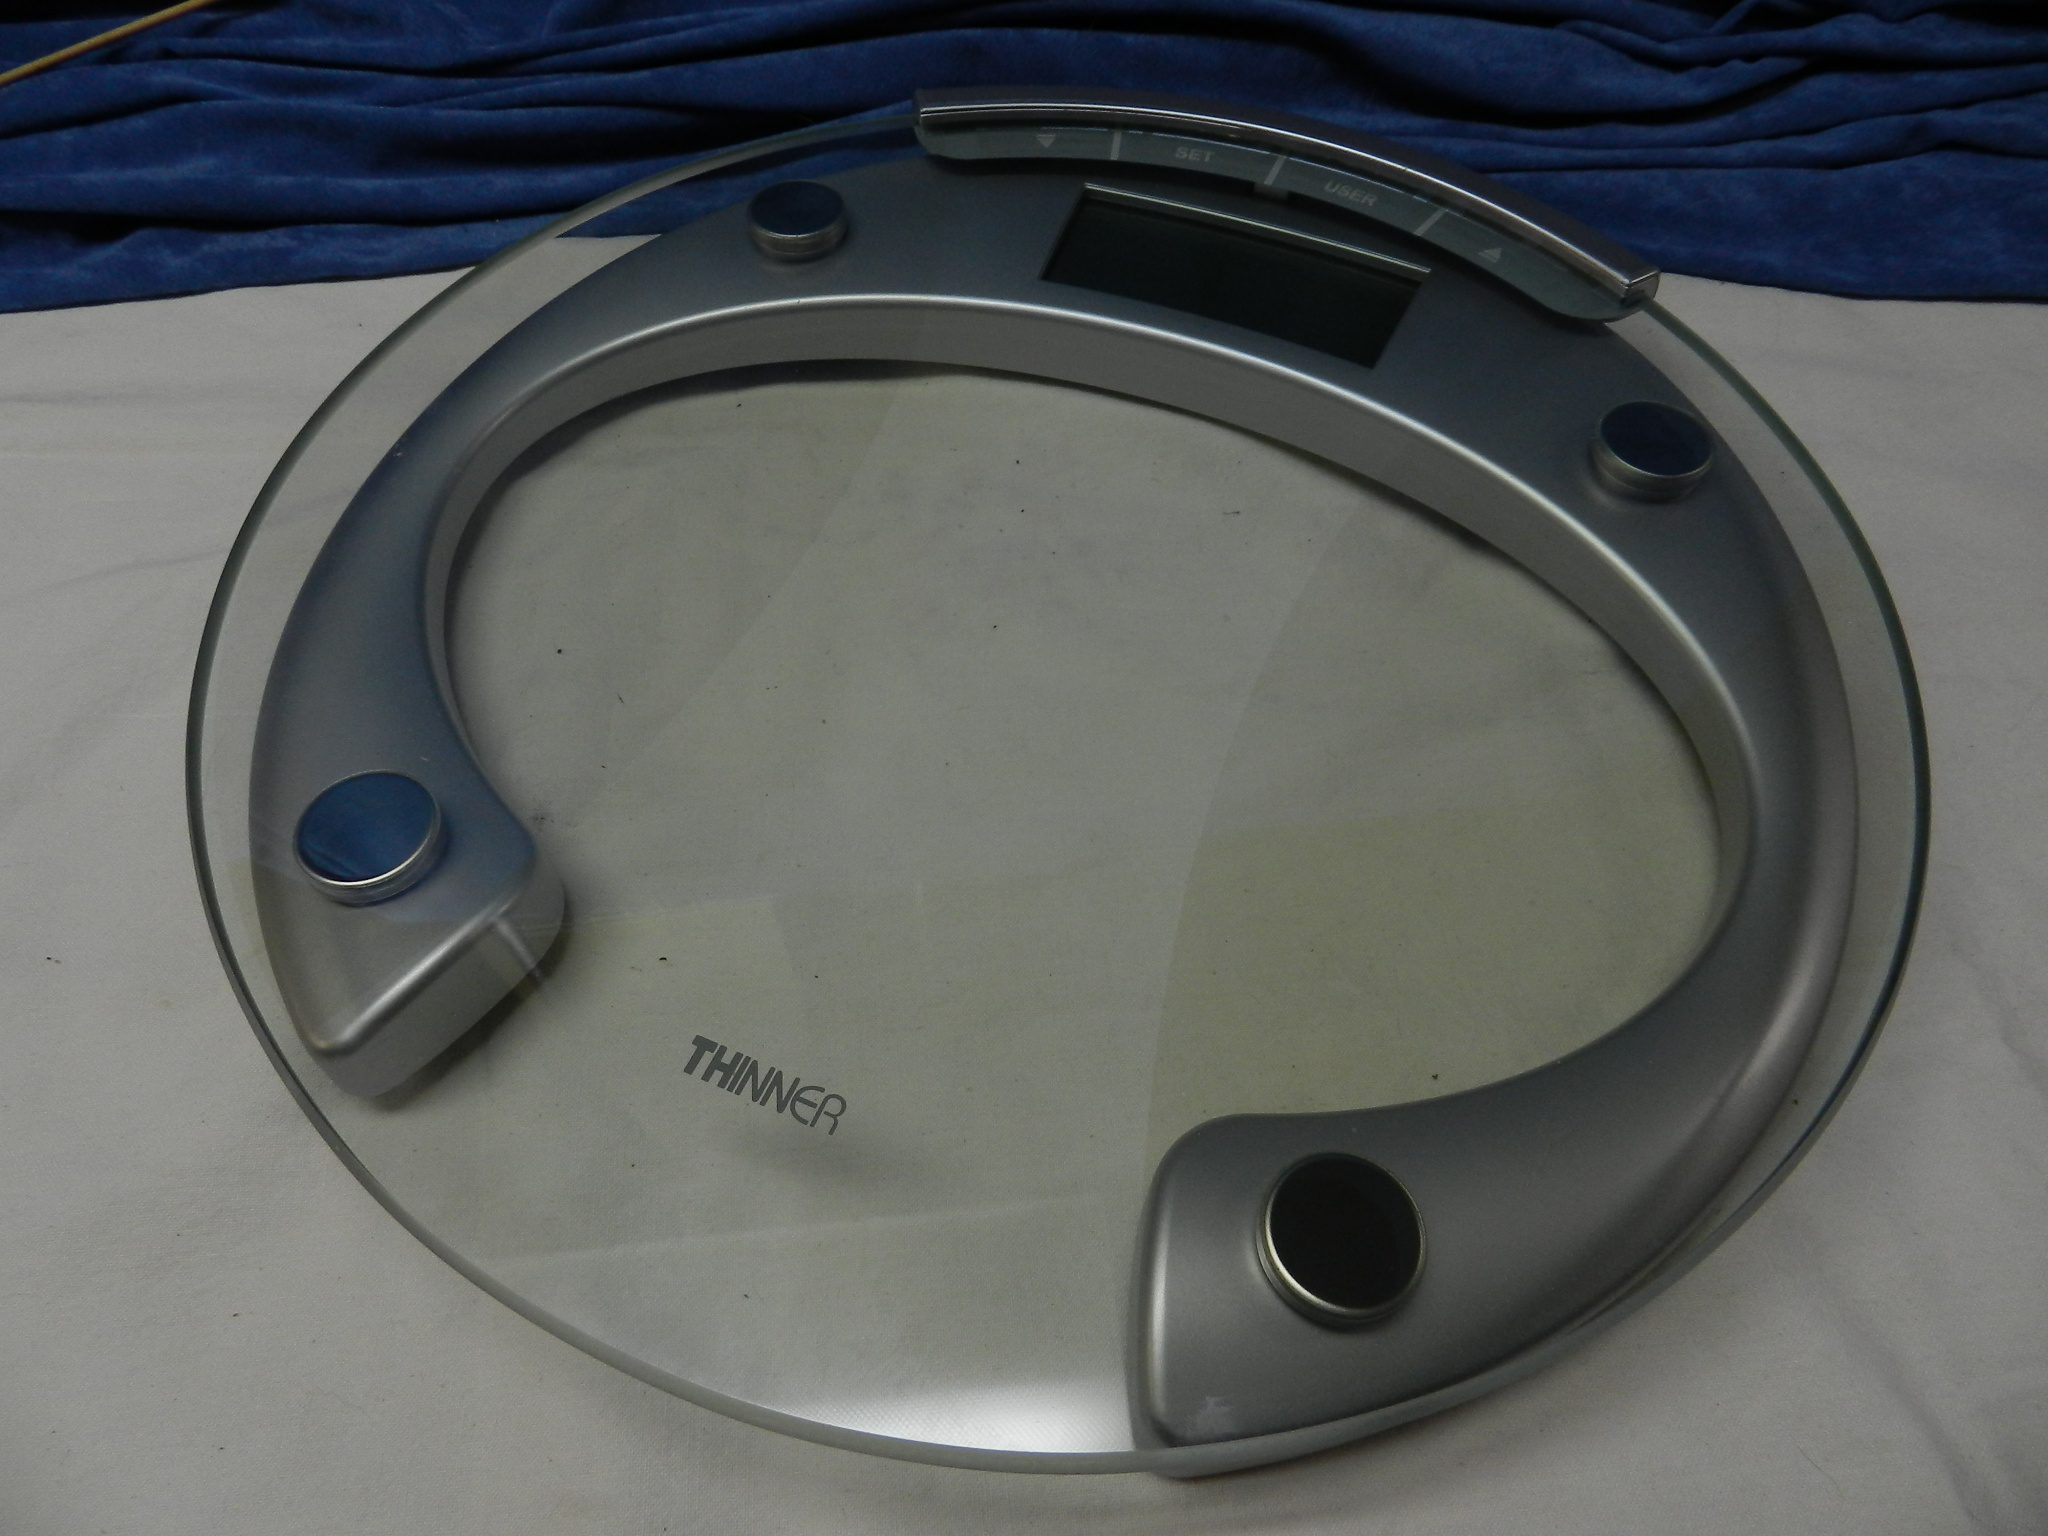 **SOLD**  Conair Thinner Glass Digital Precision Bathroom Scale